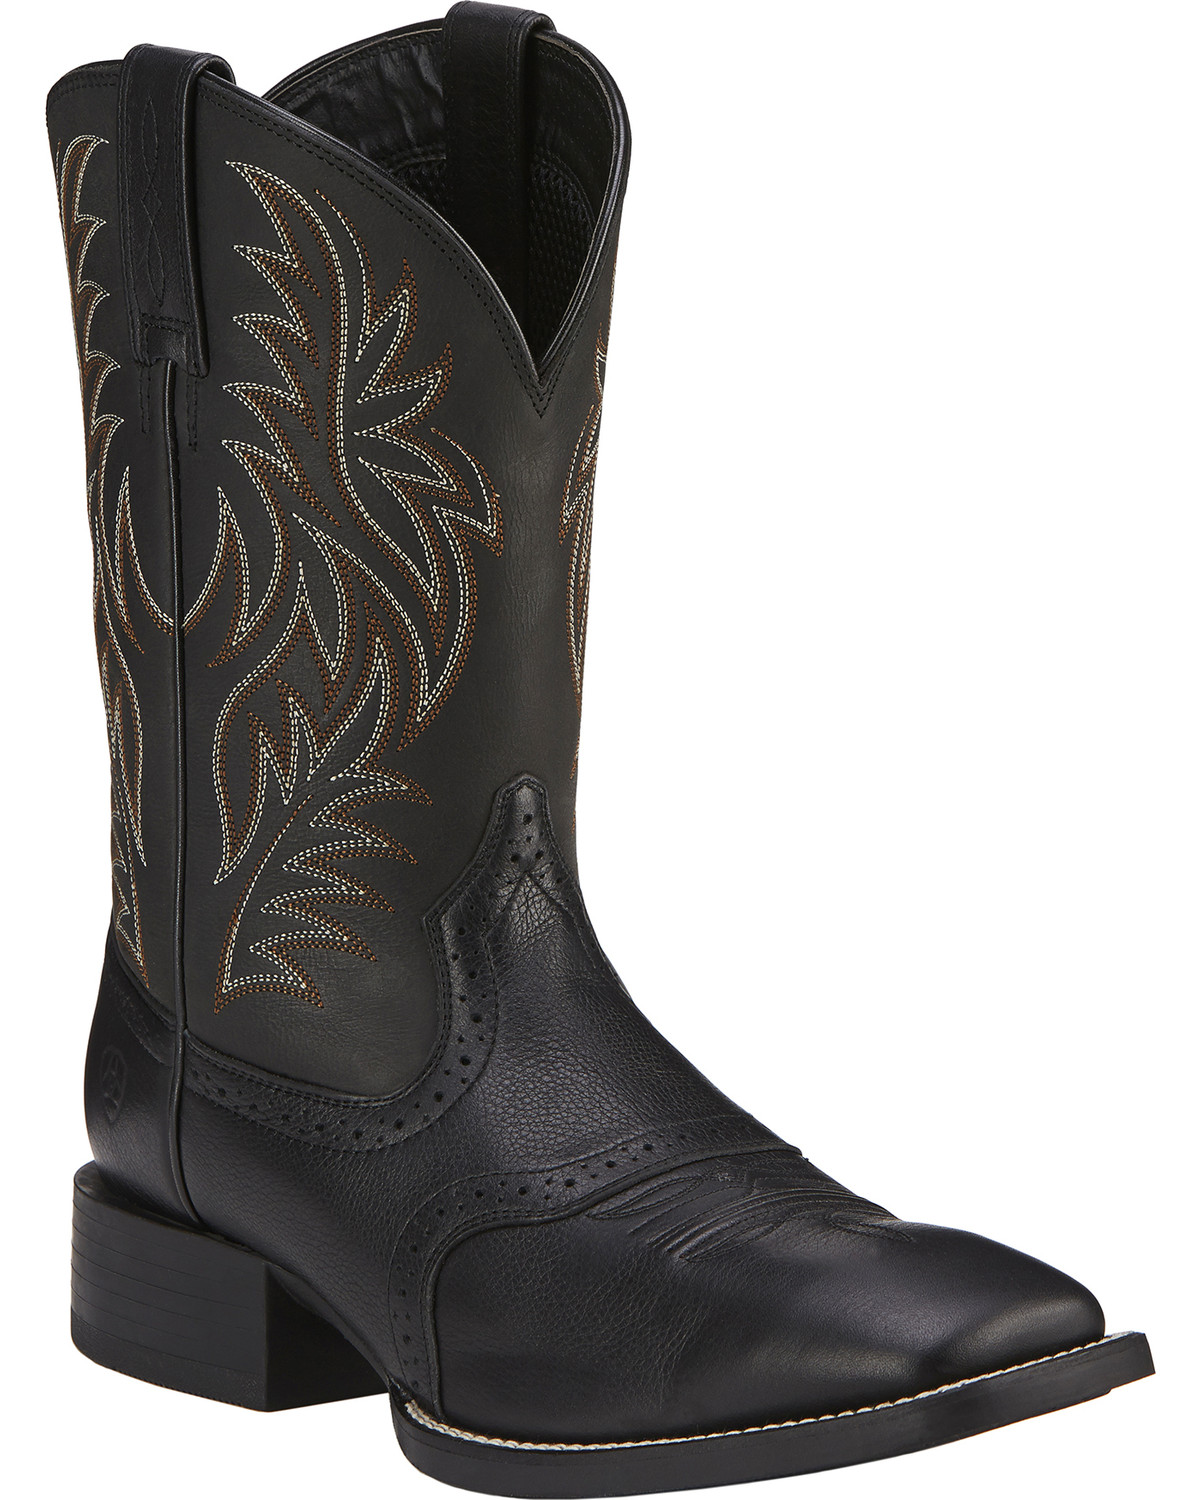 5122090fccb Wide Square Toe Cowgirl Boots - Ivoiregion